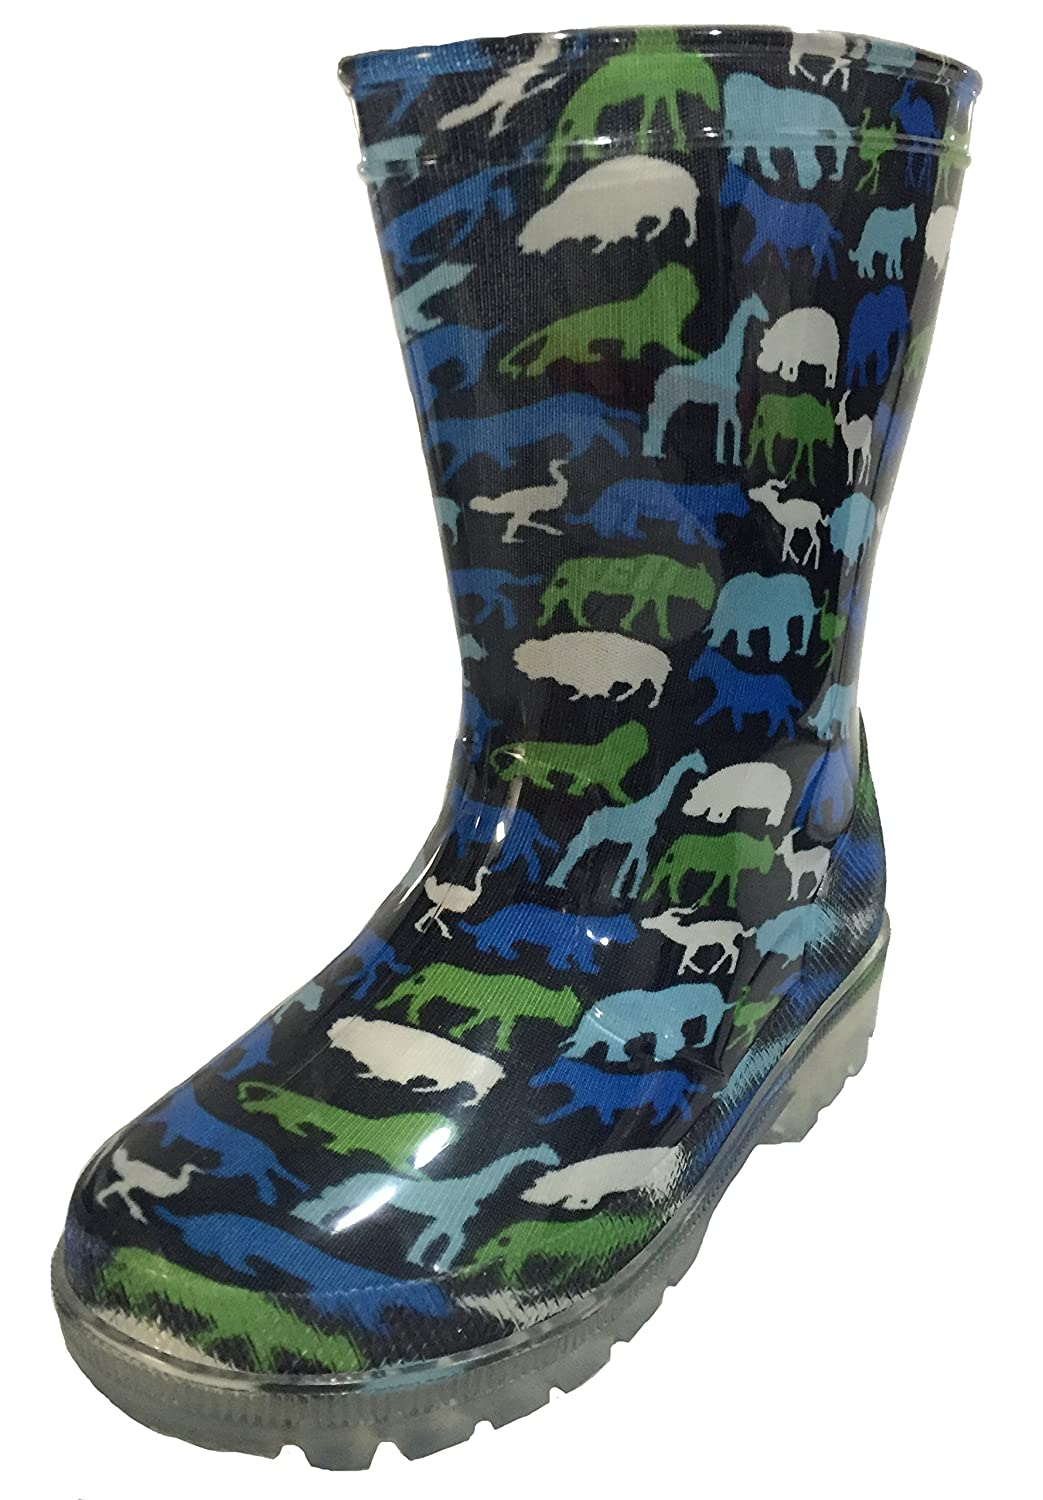 SIYA Toddler and Youth Boys Light-Up Animal Design Rain Boot Snow Boot